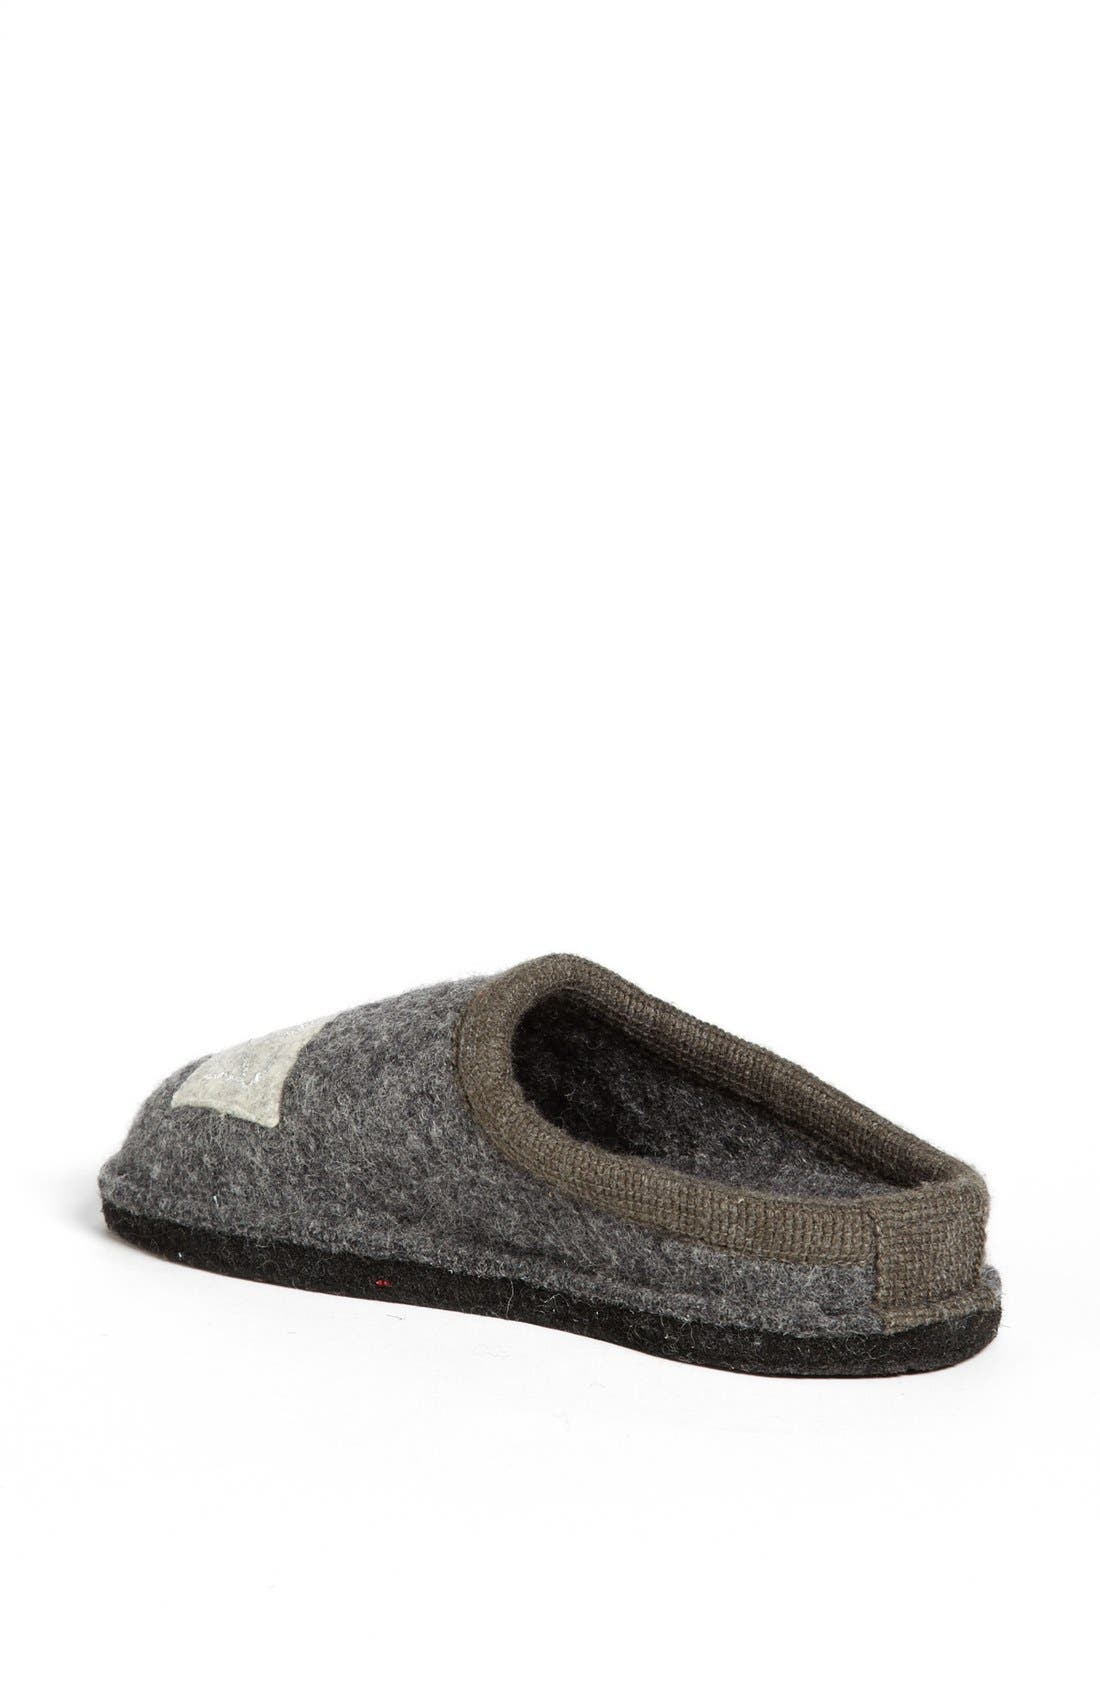 Alternate Image 2  - Haflinger 'Cat' Slipper